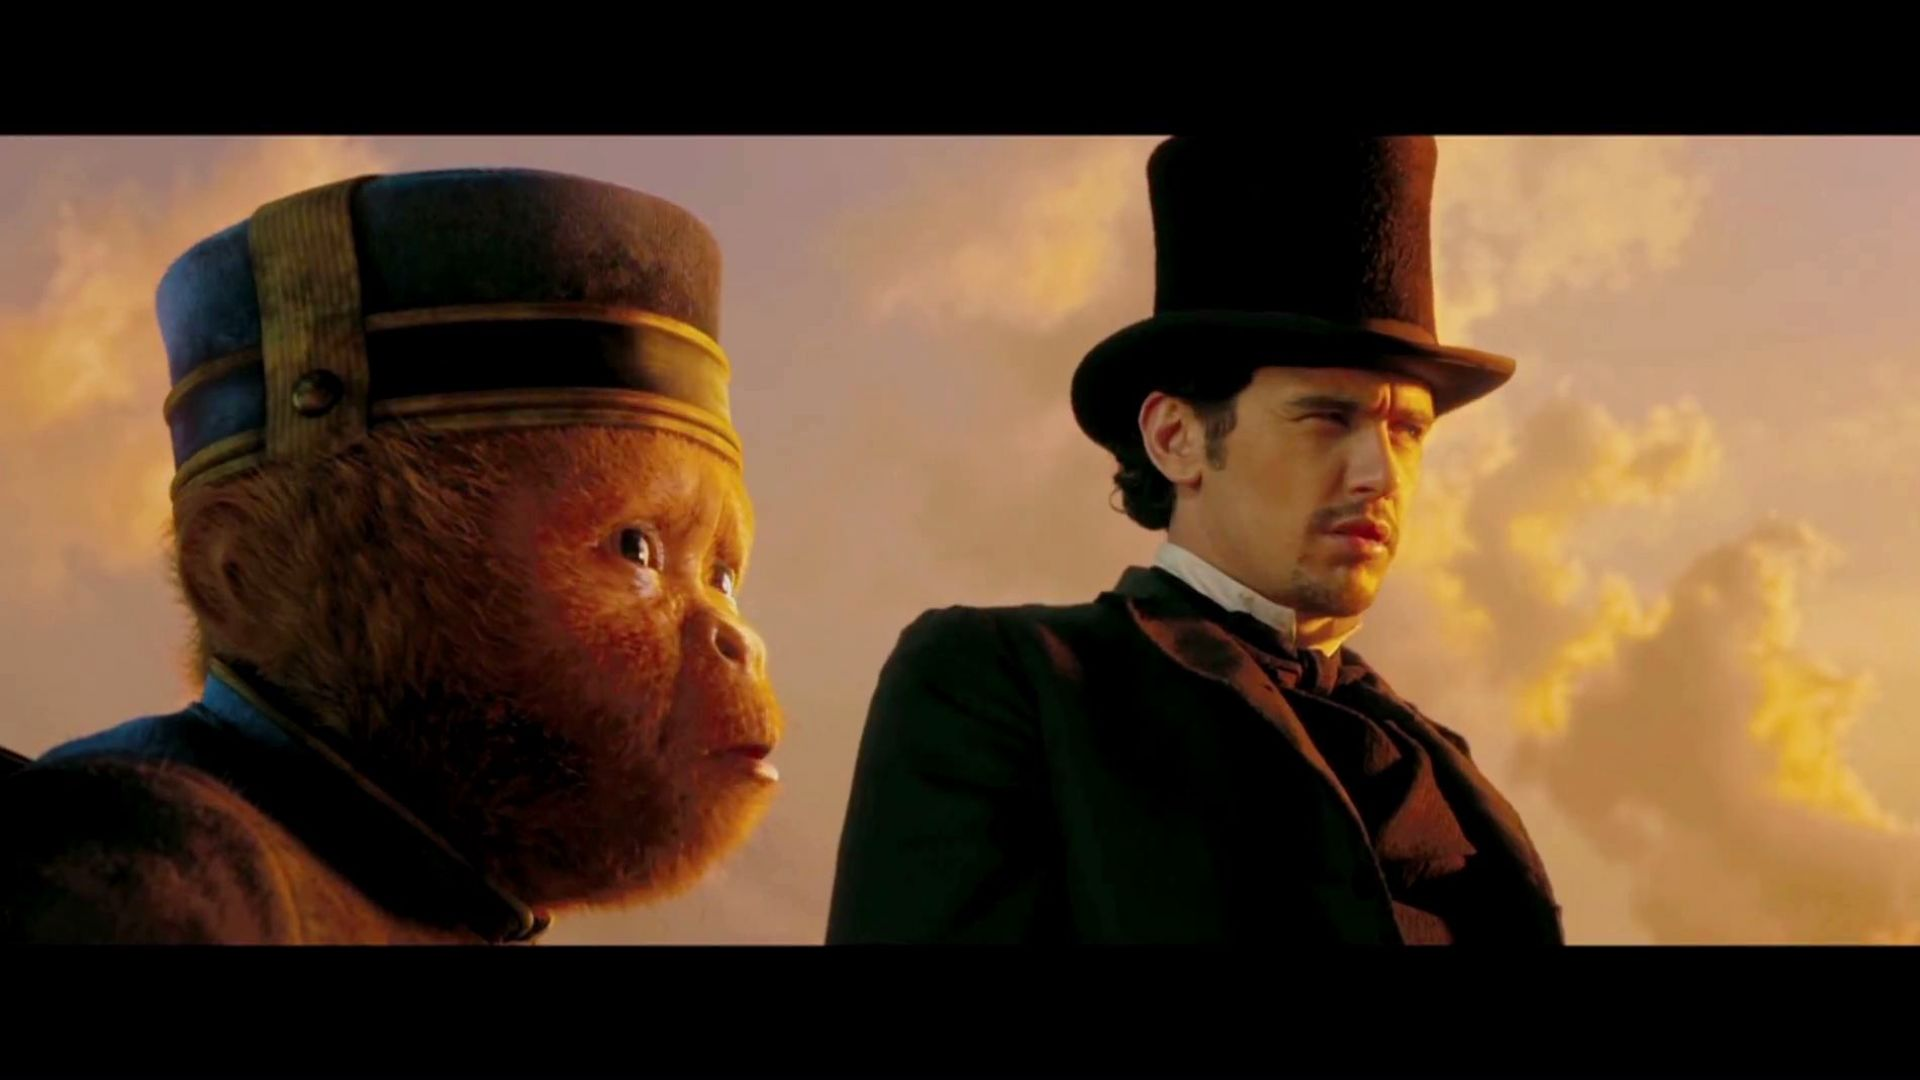 Good work. You just sneezed away the plan. Oz the Great and Powerful